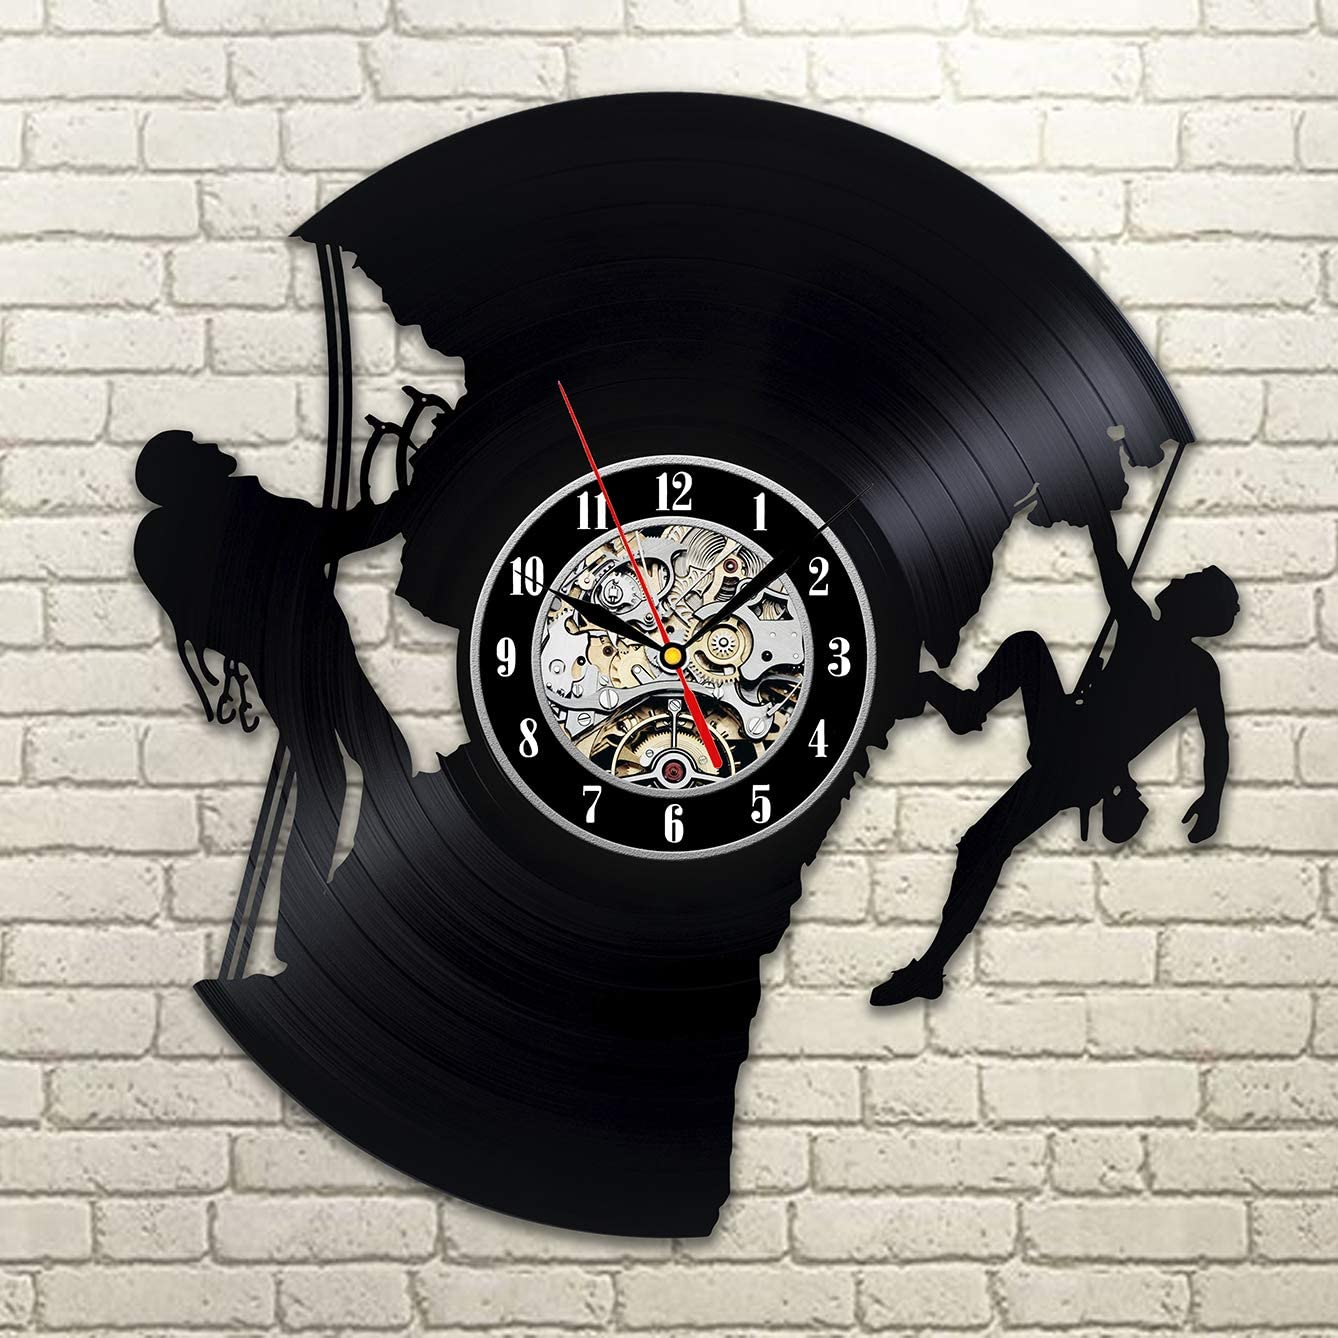 Kovides Climbing Art Gift Idea for Traveler Decorations for Nursery Hobby Sport Wall Art Retro Vinyl Record Clock Vintage Wall Clock Climbing for Your Life Rock